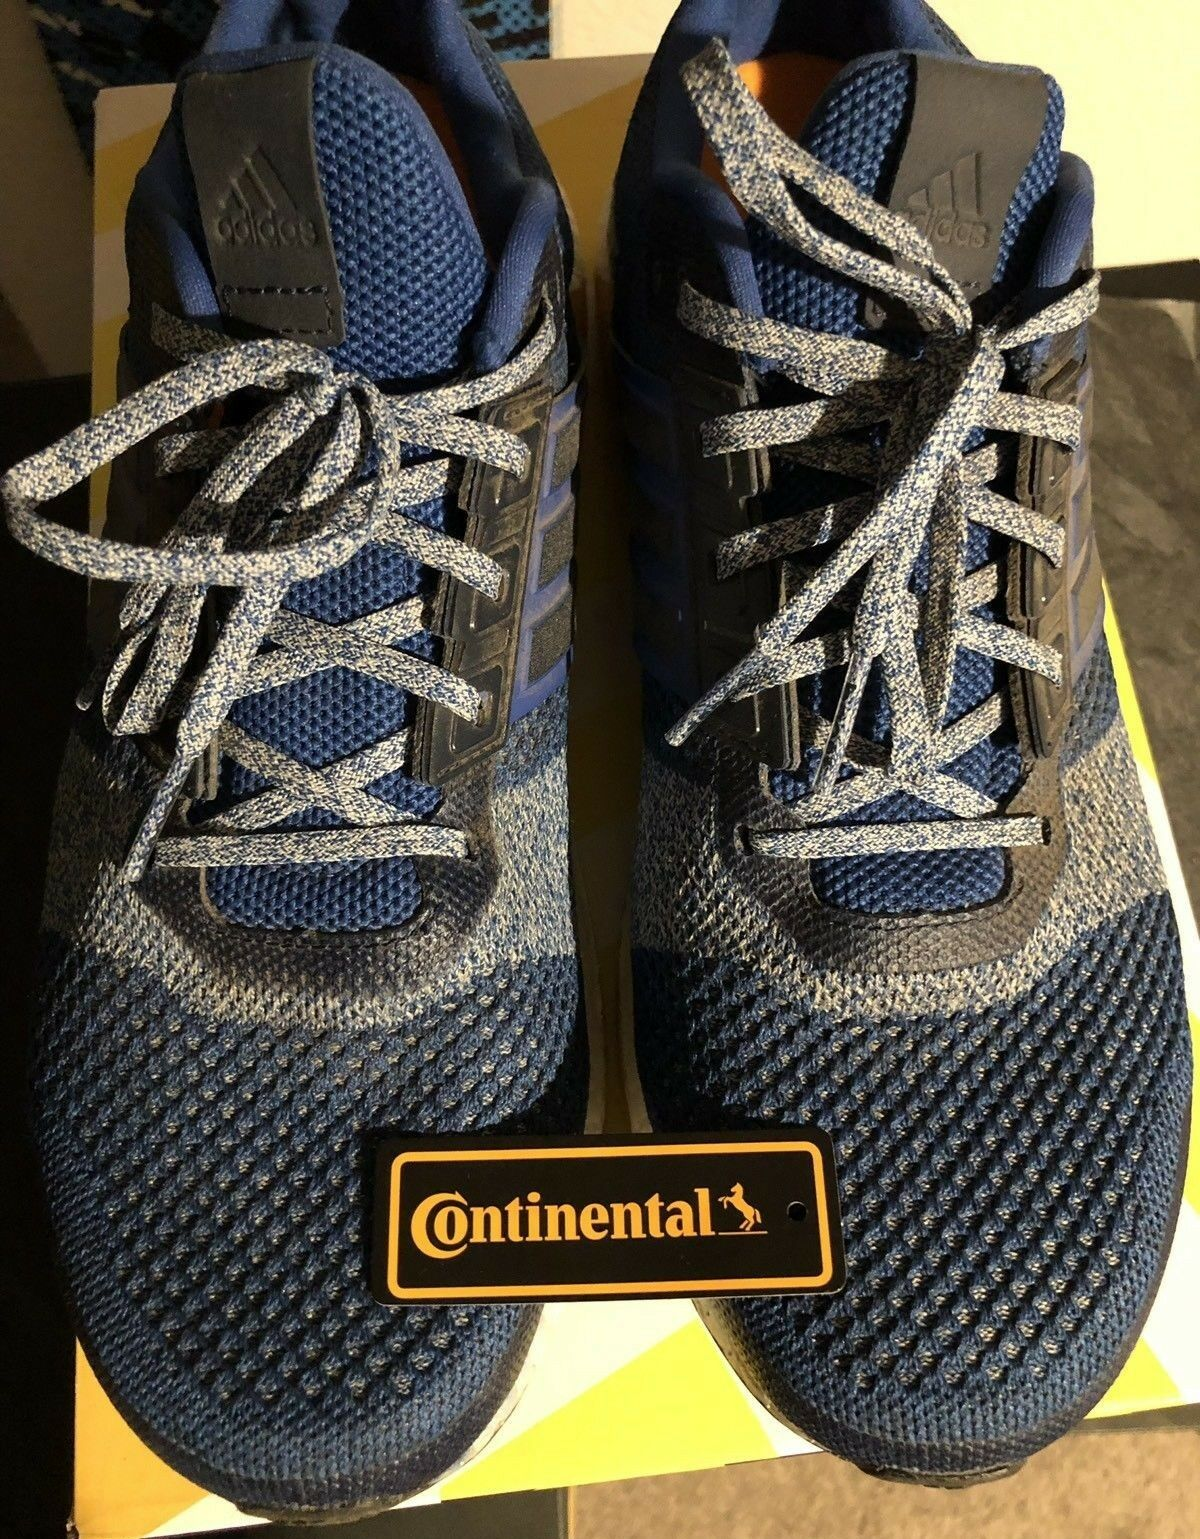 19d31d2bad234 Adidas Ultra Boost ST bluee Size Size Size 11.5 180 9fe584 ...